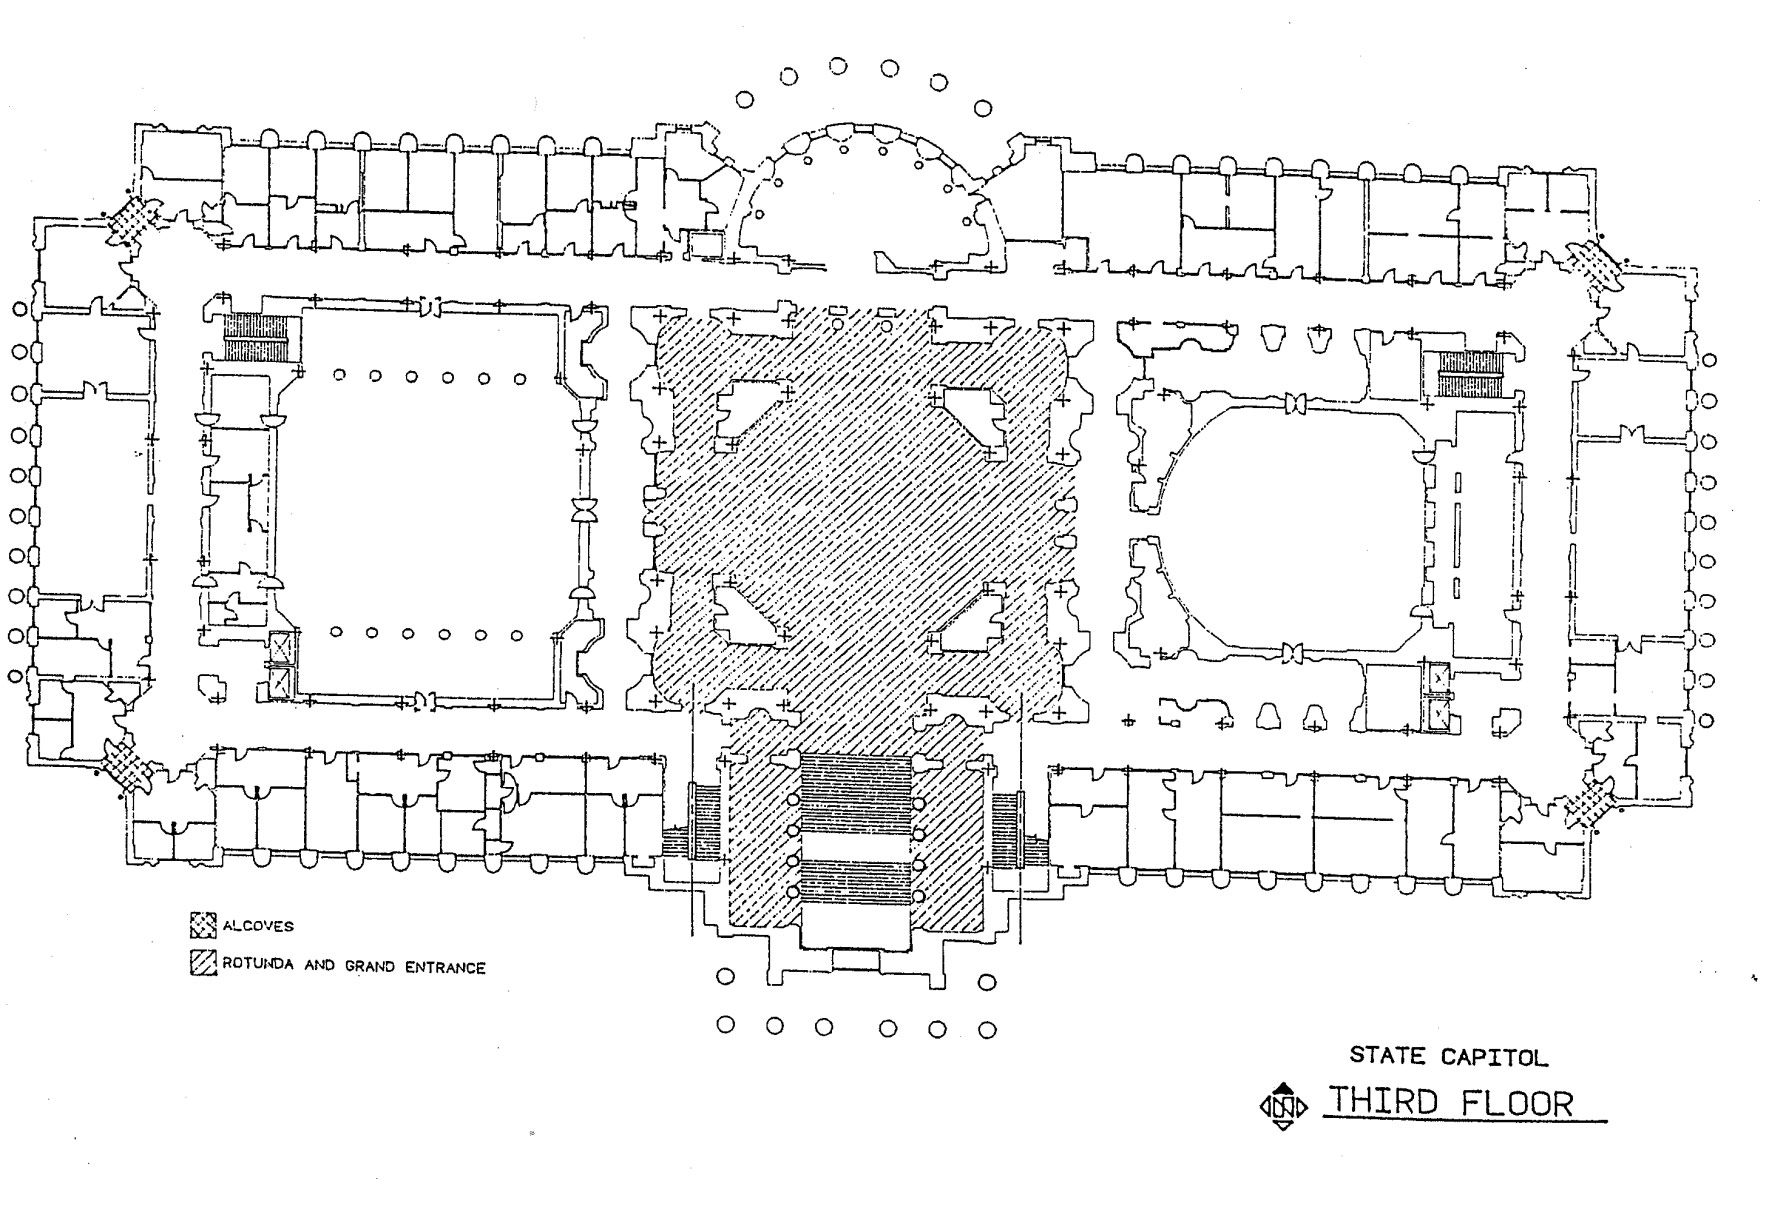 Third floor of the Missouri State Capitol map